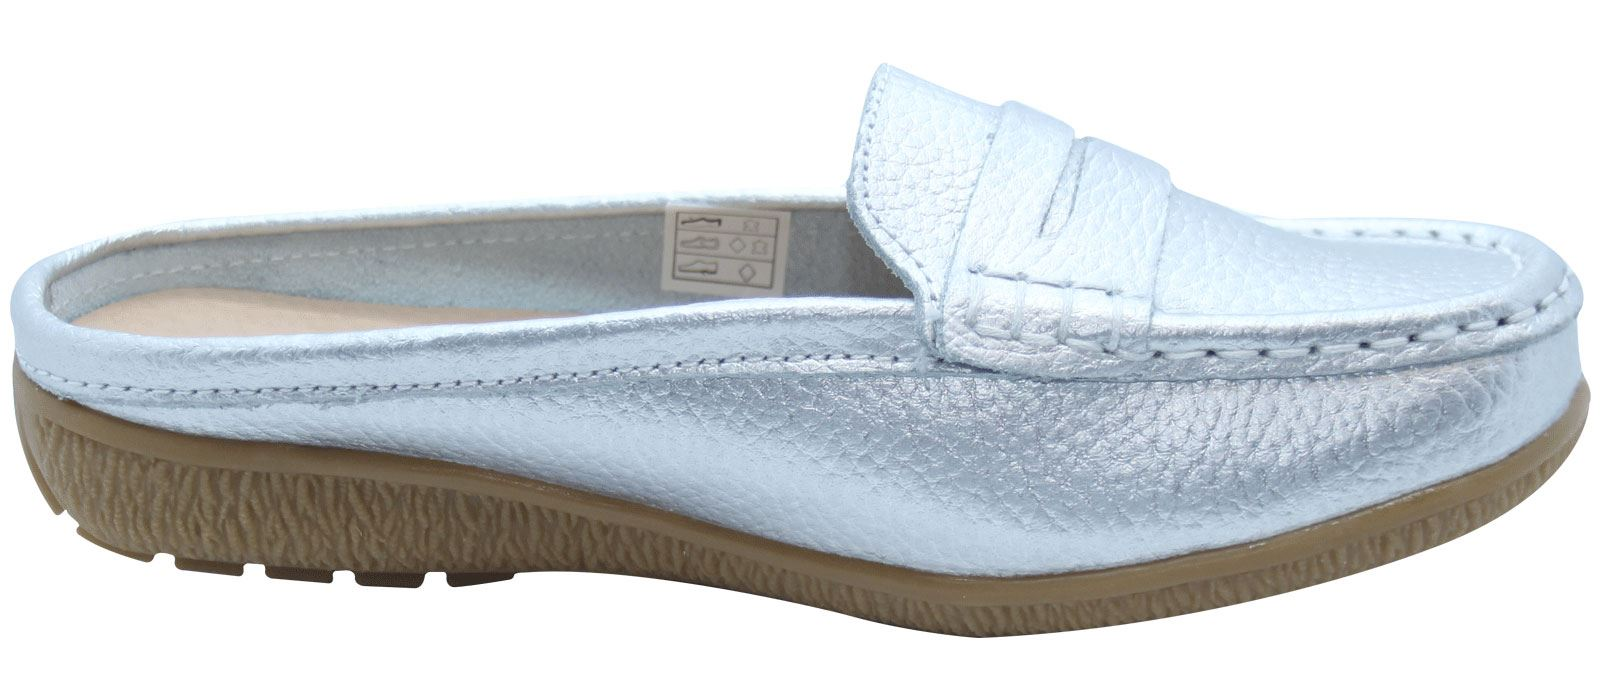 Ladies-Leather-Loafer-Mules-Comfort-Shoes-Womens-Slider-Moccasins-Shoes thumbnail 34